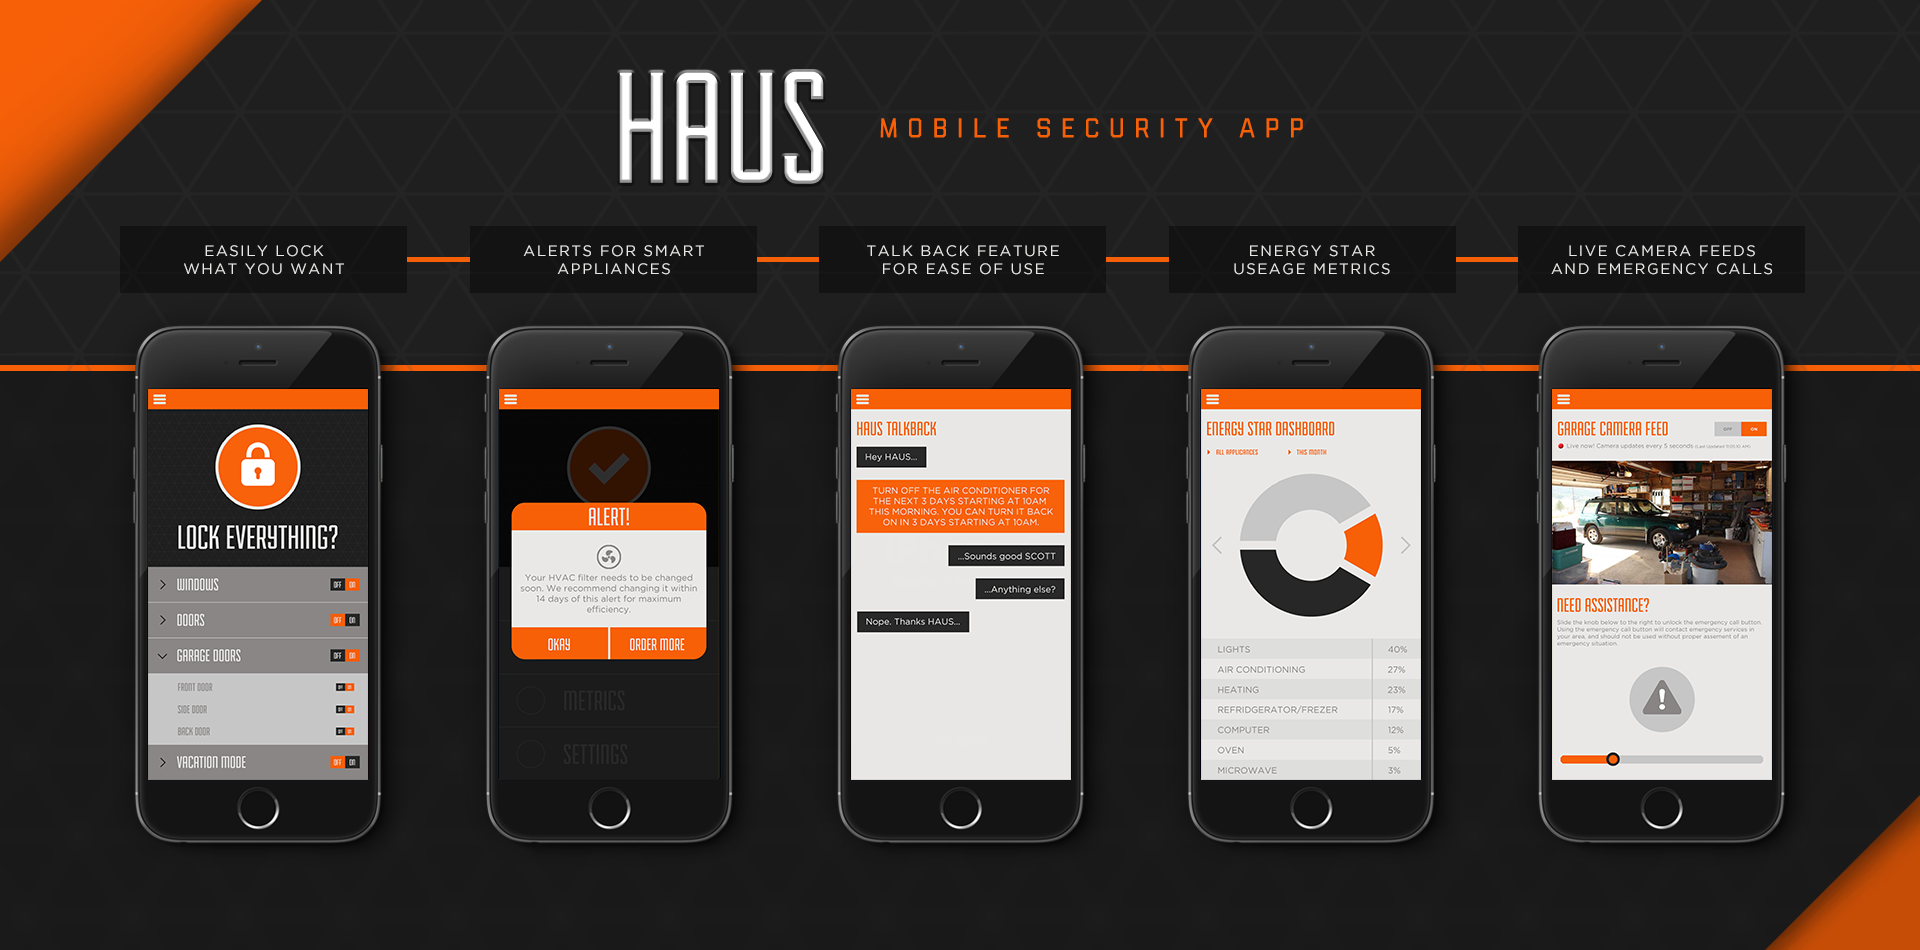 haus mobile app ui ux design. Black Bedroom Furniture Sets. Home Design Ideas